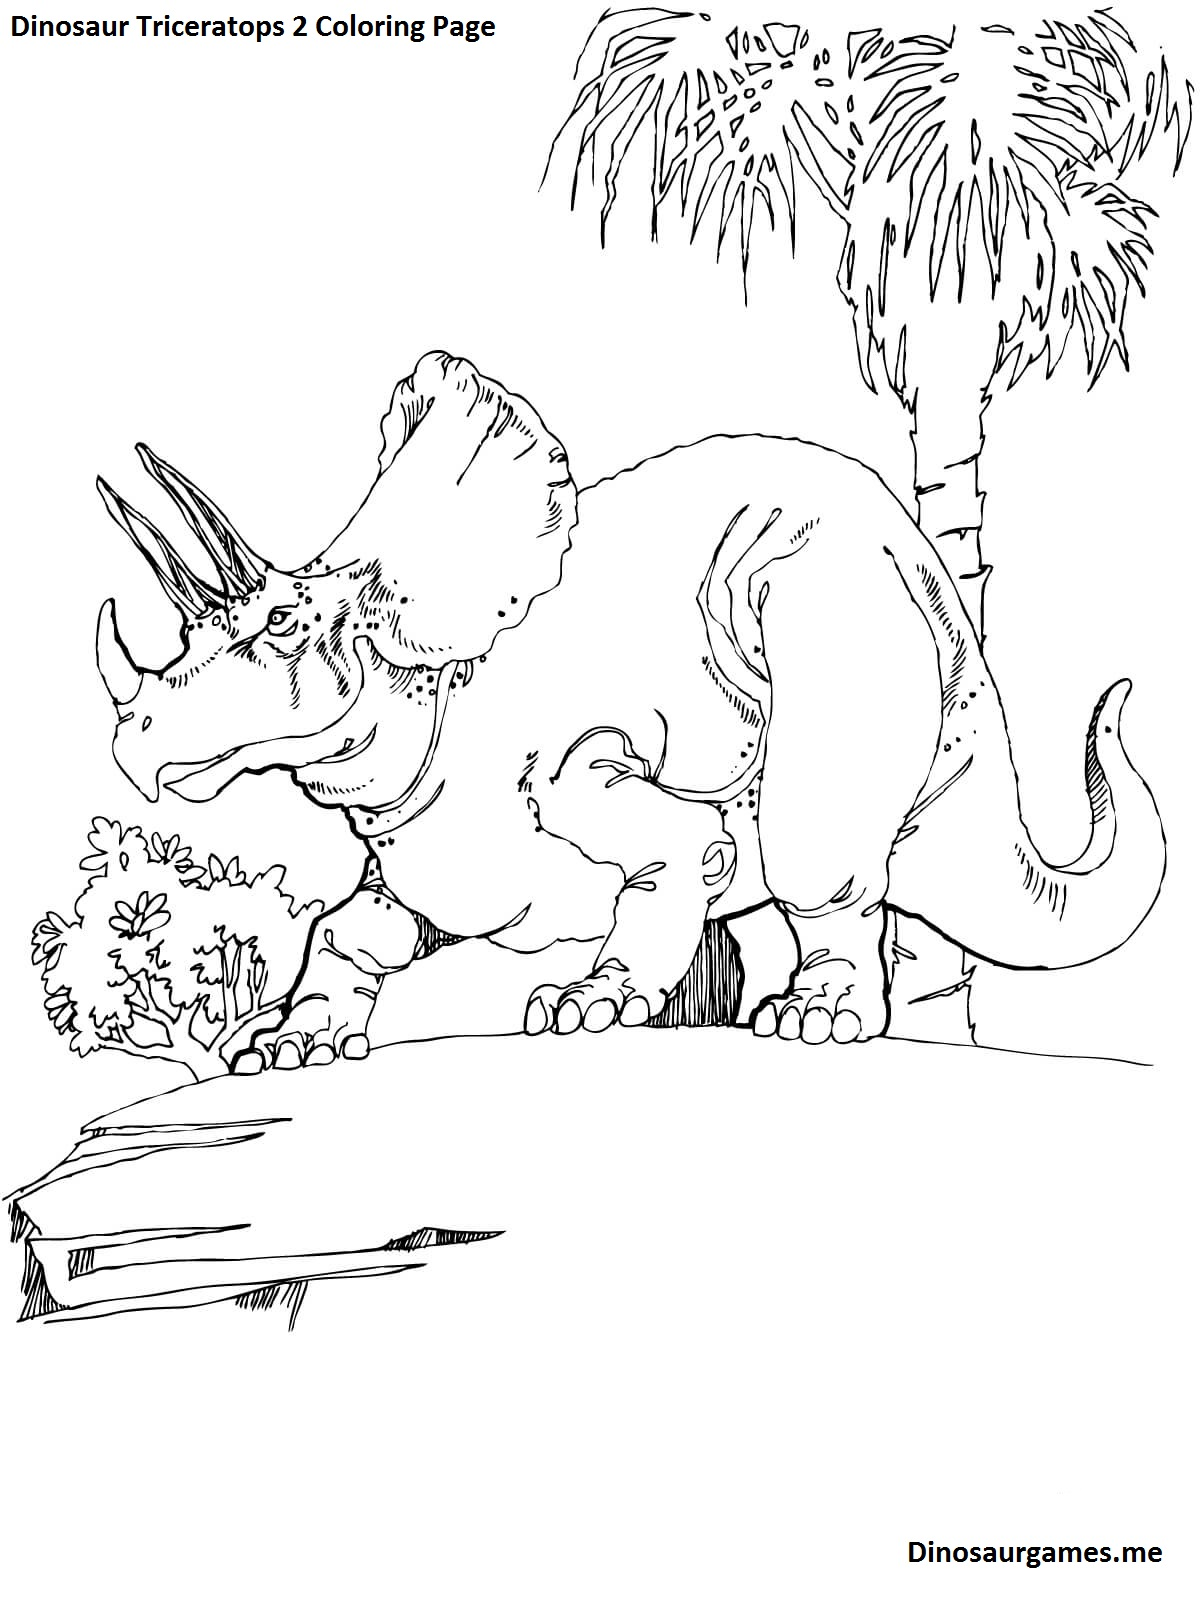 Dinosaur Triceratops 2 Coloring Page